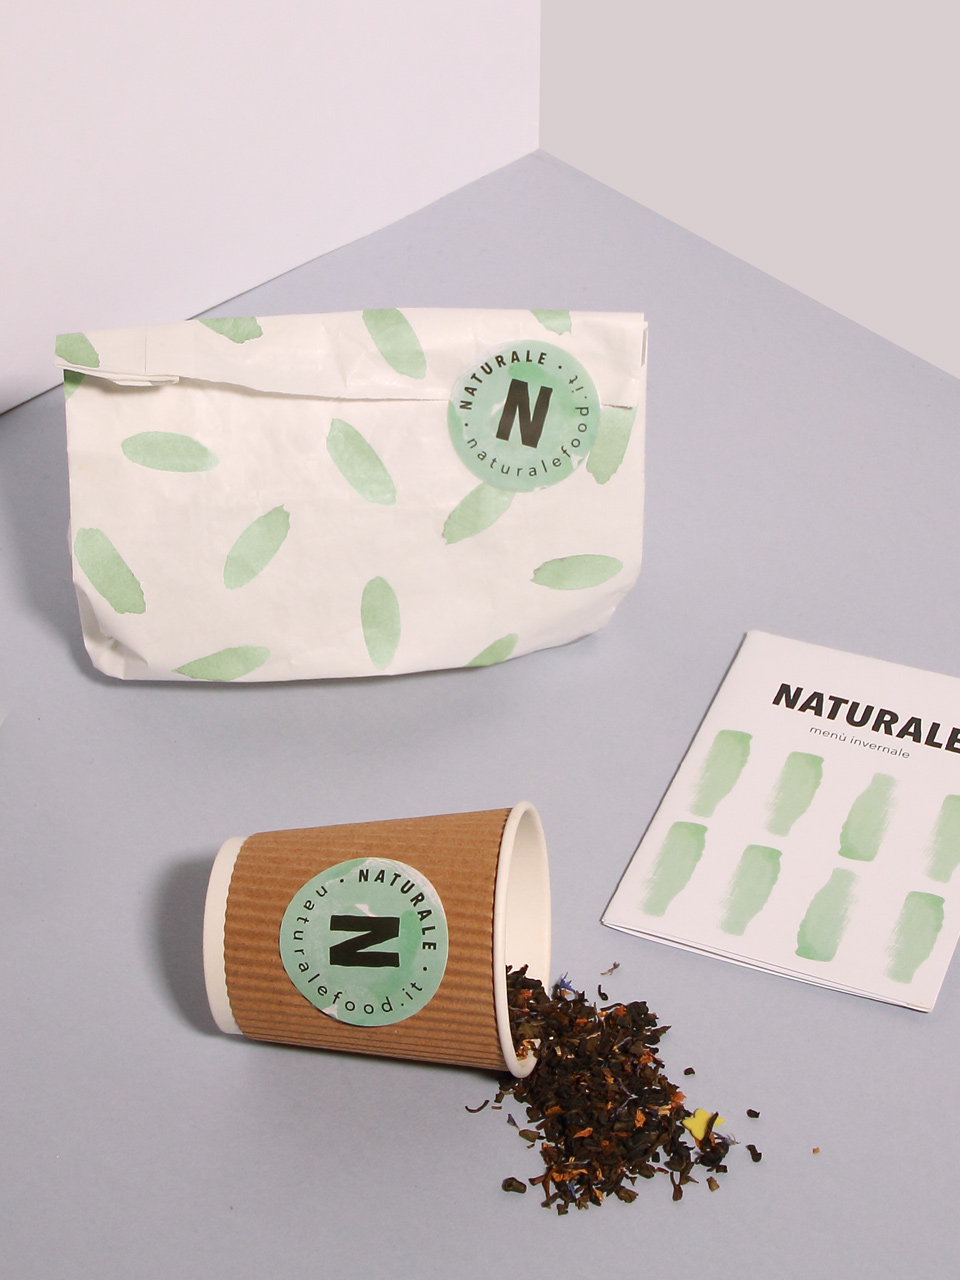 Naturale fast casual restaurant branding